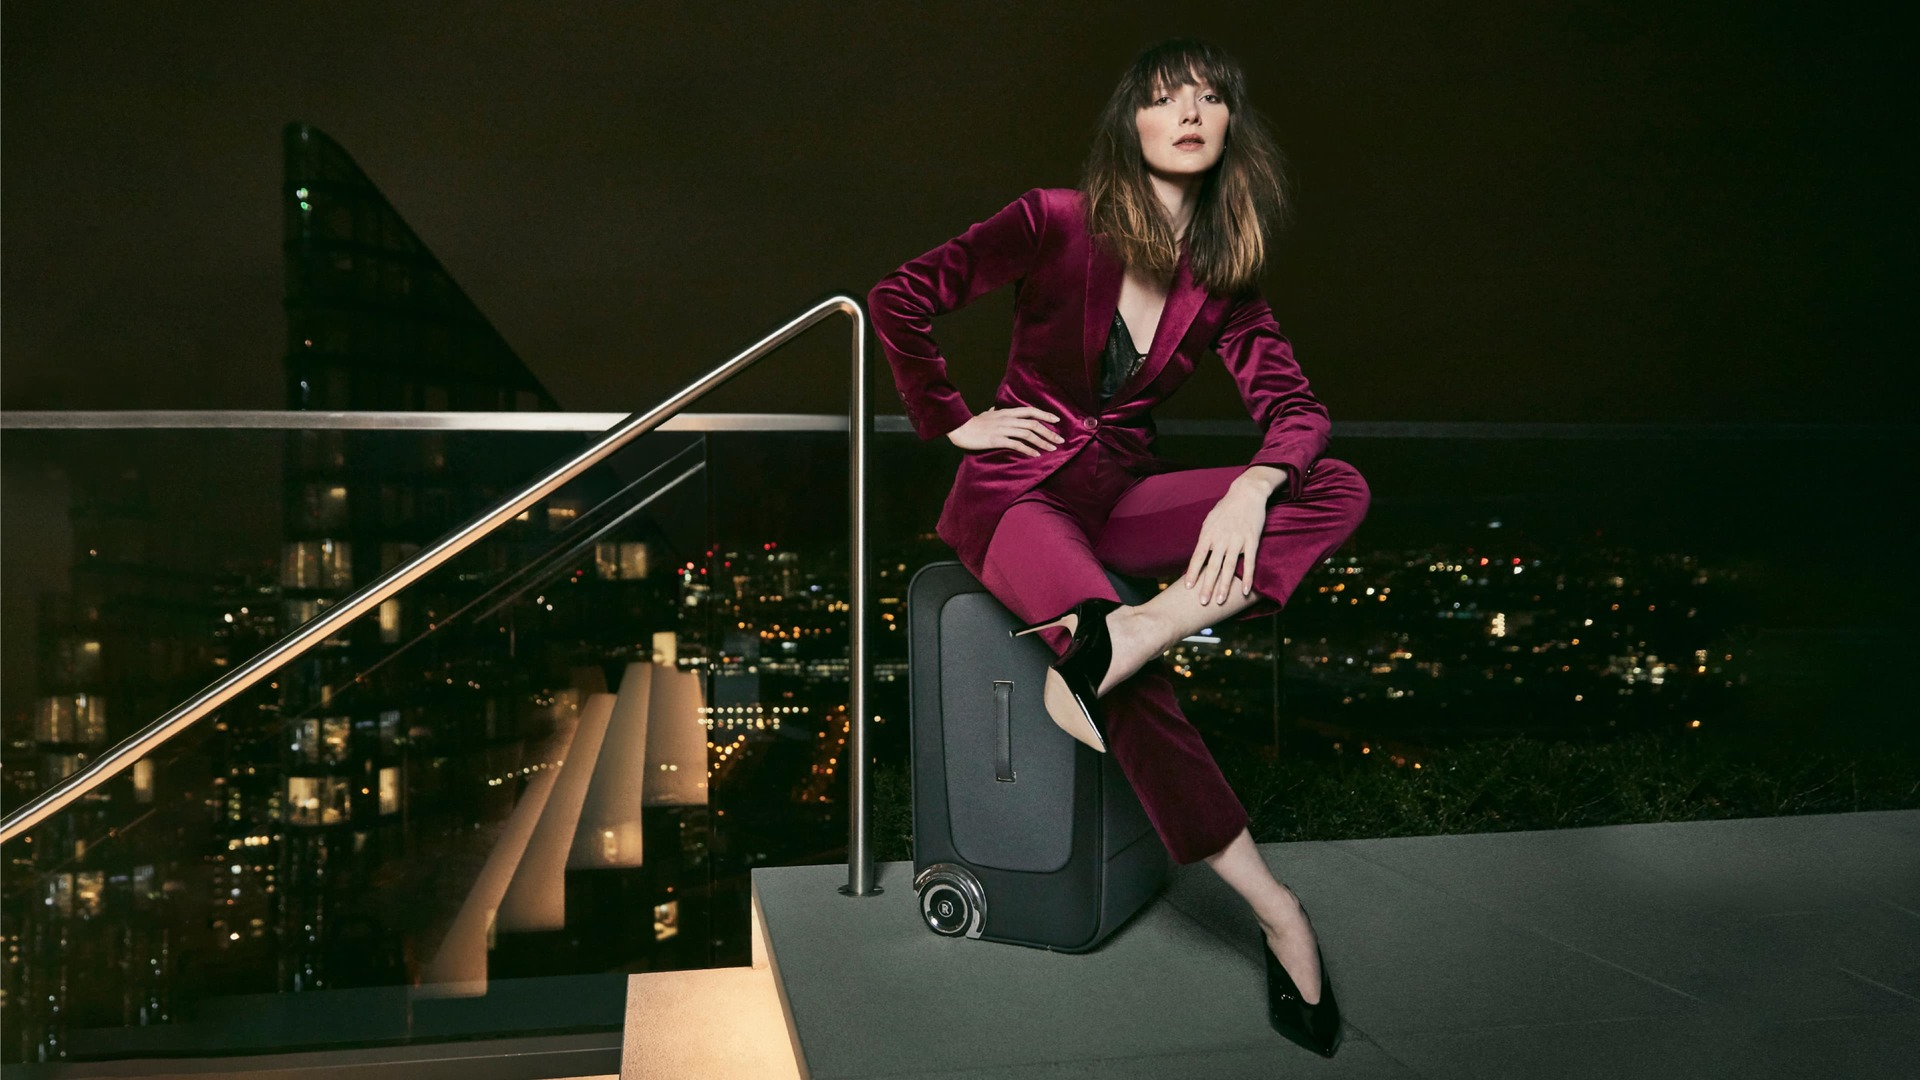 Woman sits upon Grand Tourer from Rolls-Royce Kinetic Luggage collection with night time city views in background